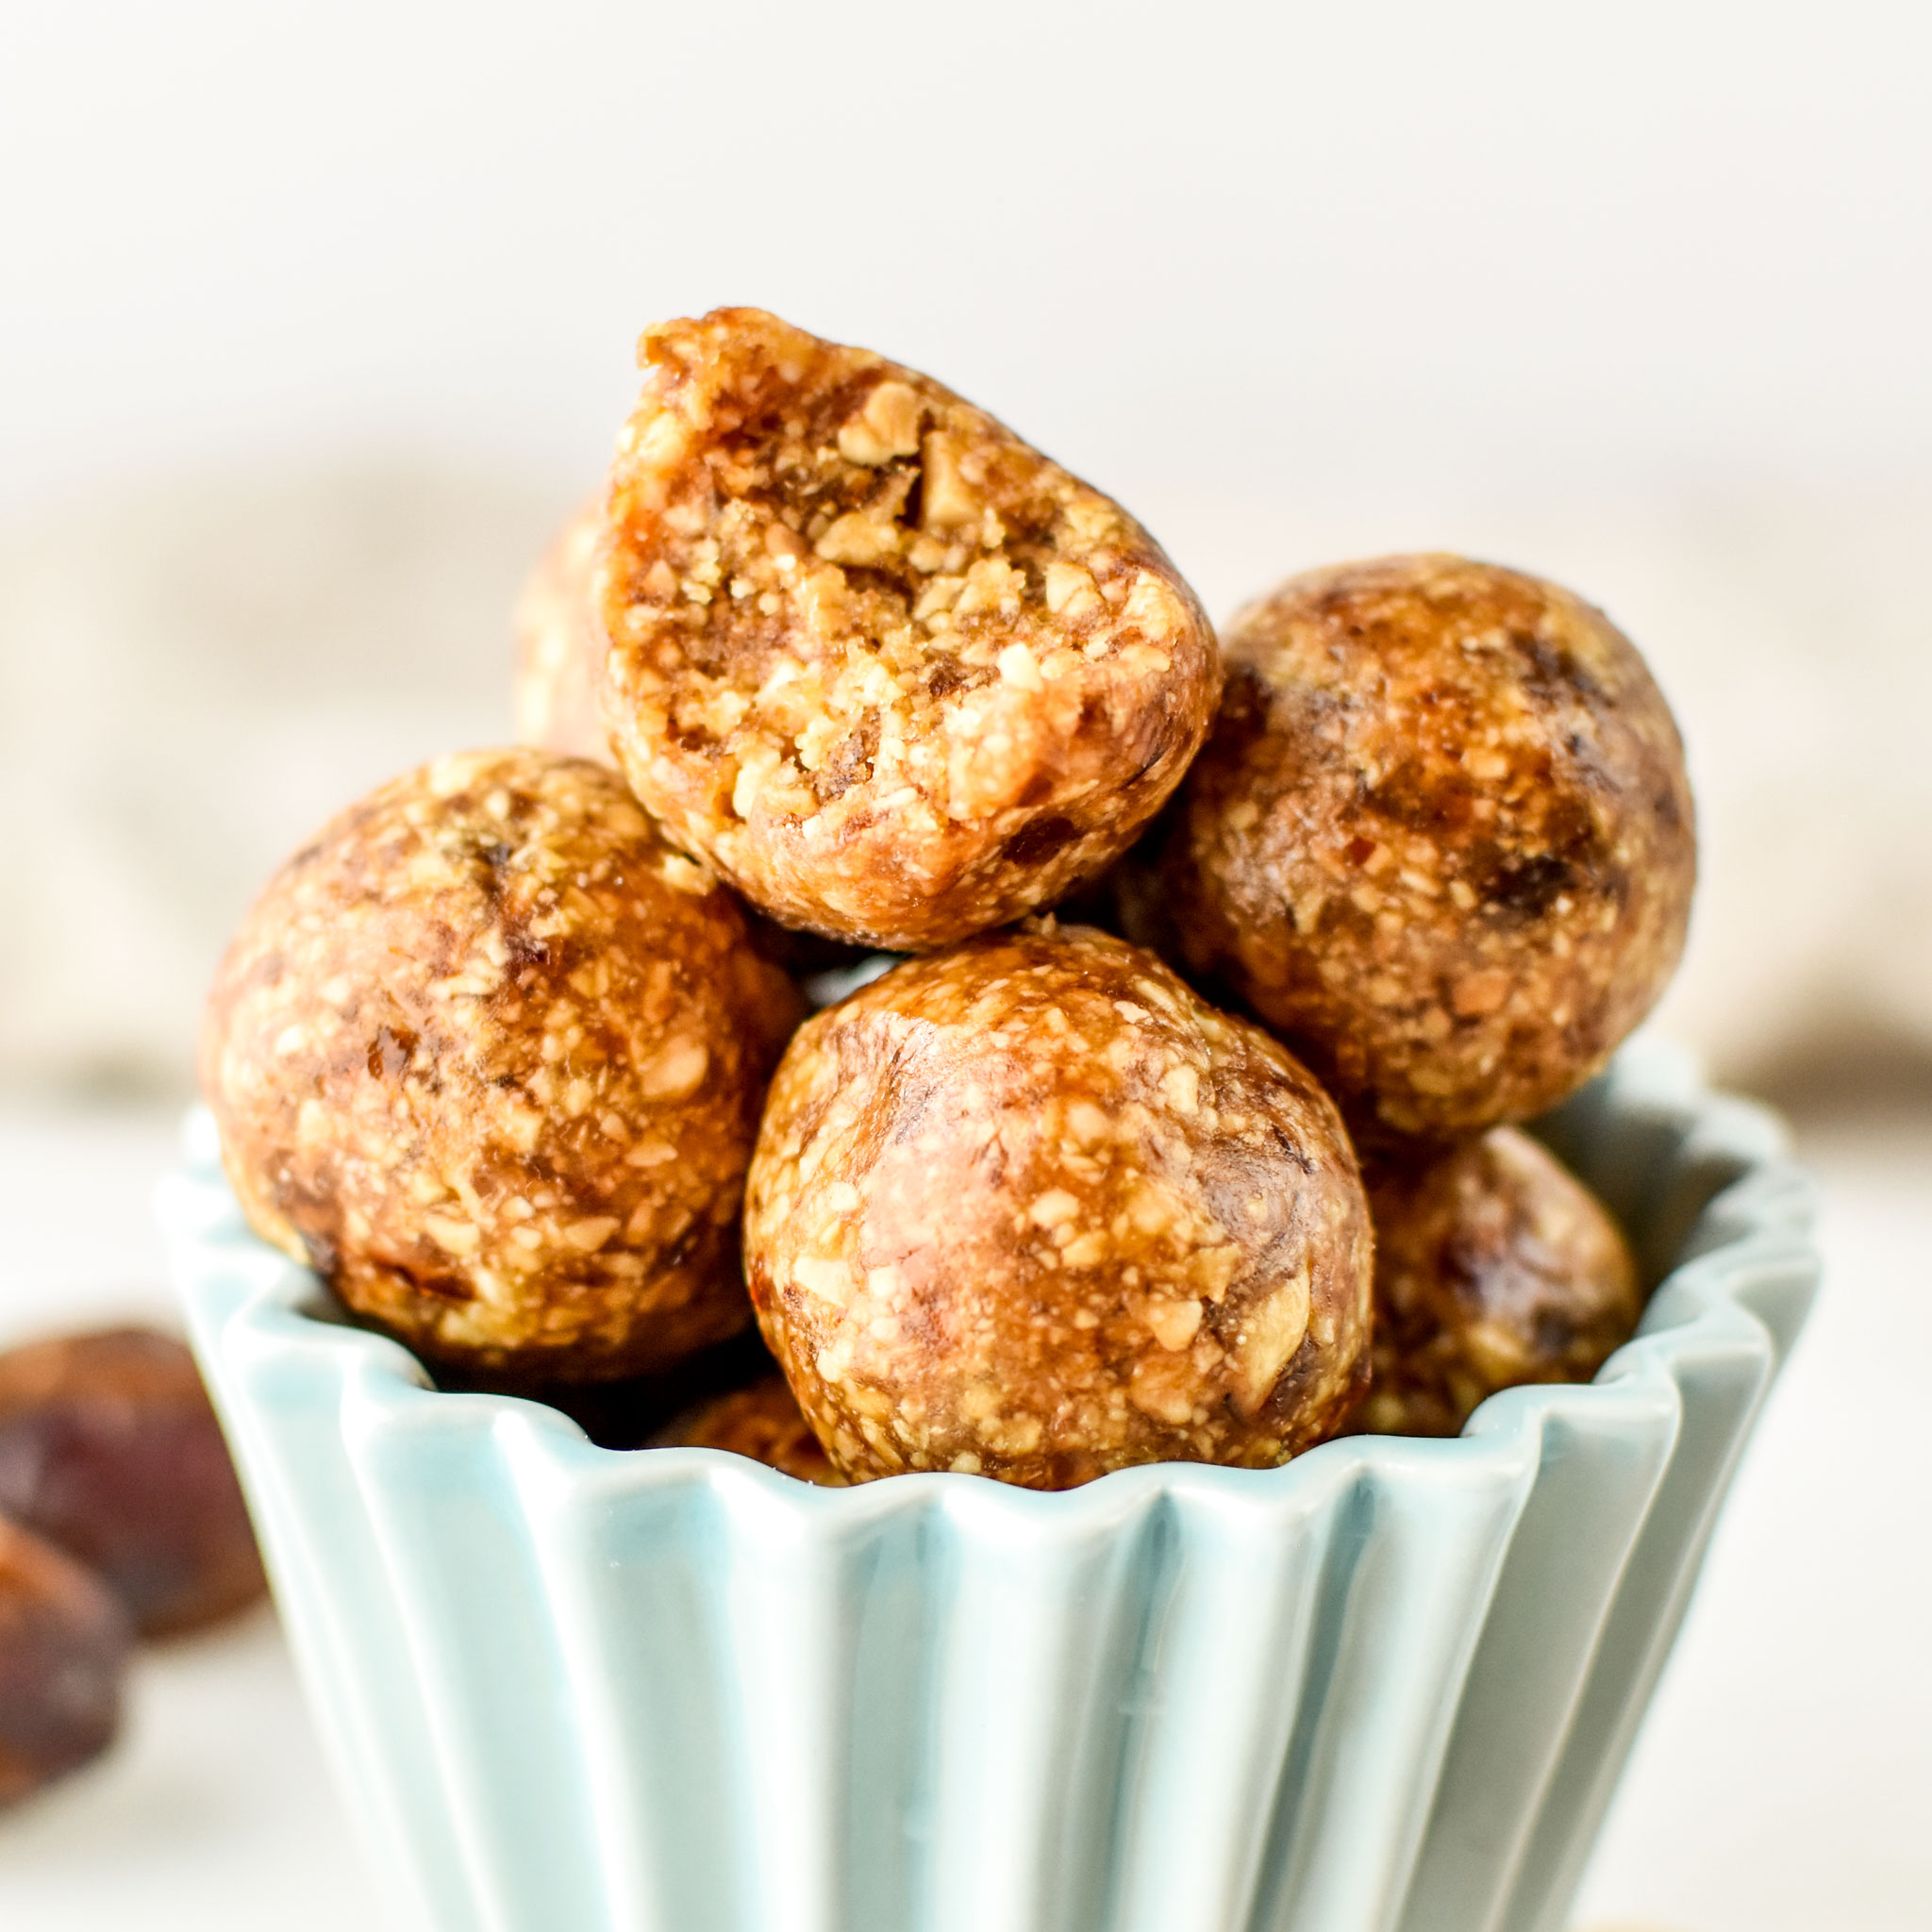 Peanut butter cookie balls on display - top one with a bite taken out.